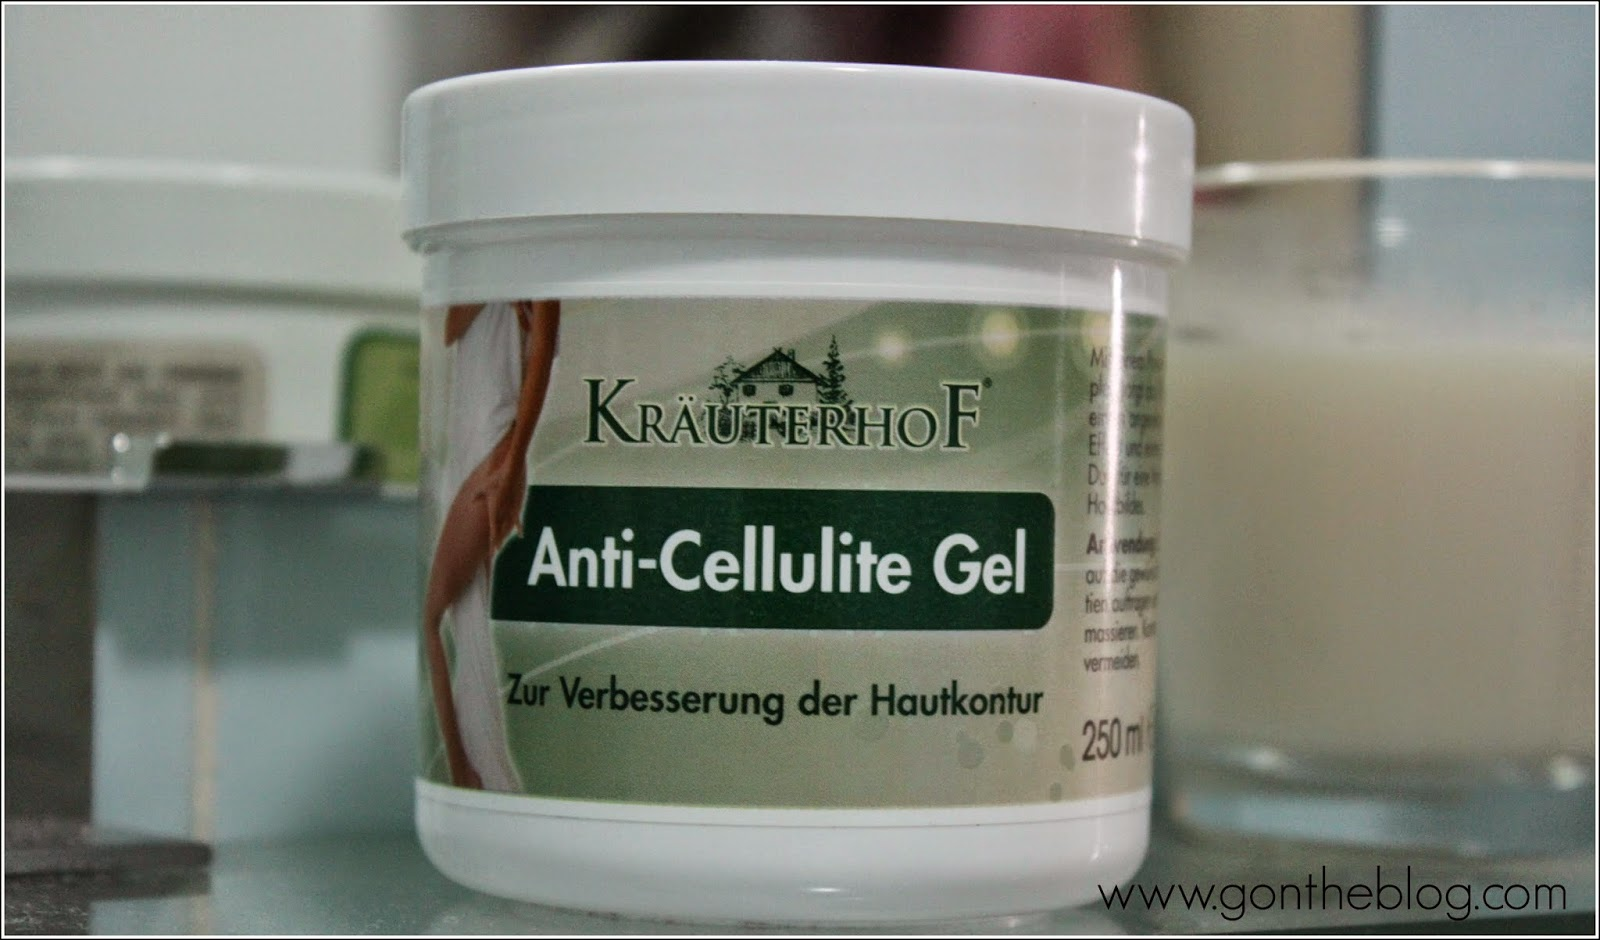 Krauterhof Anti-Cellulite Gel